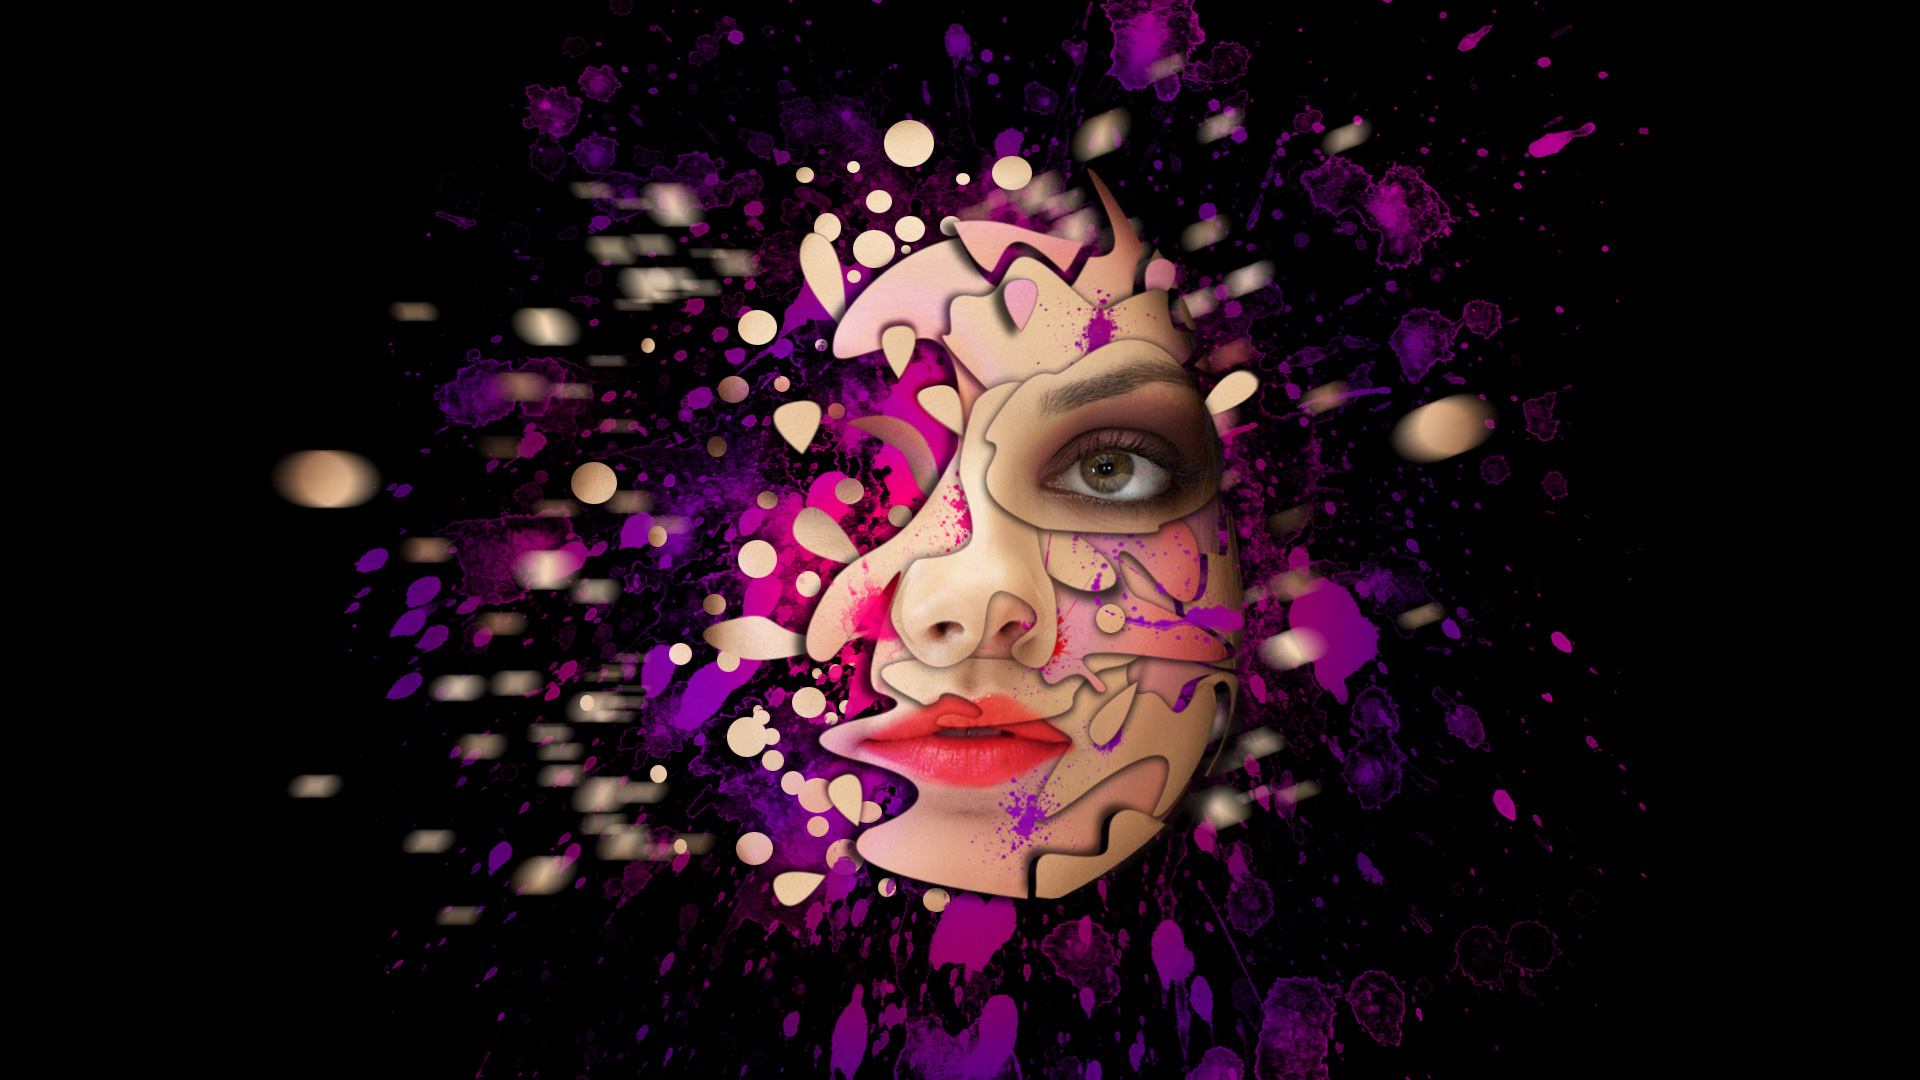 Face manipulation photoshop tutorial interesting face manipulation photoshop tutorial baditri Image collections